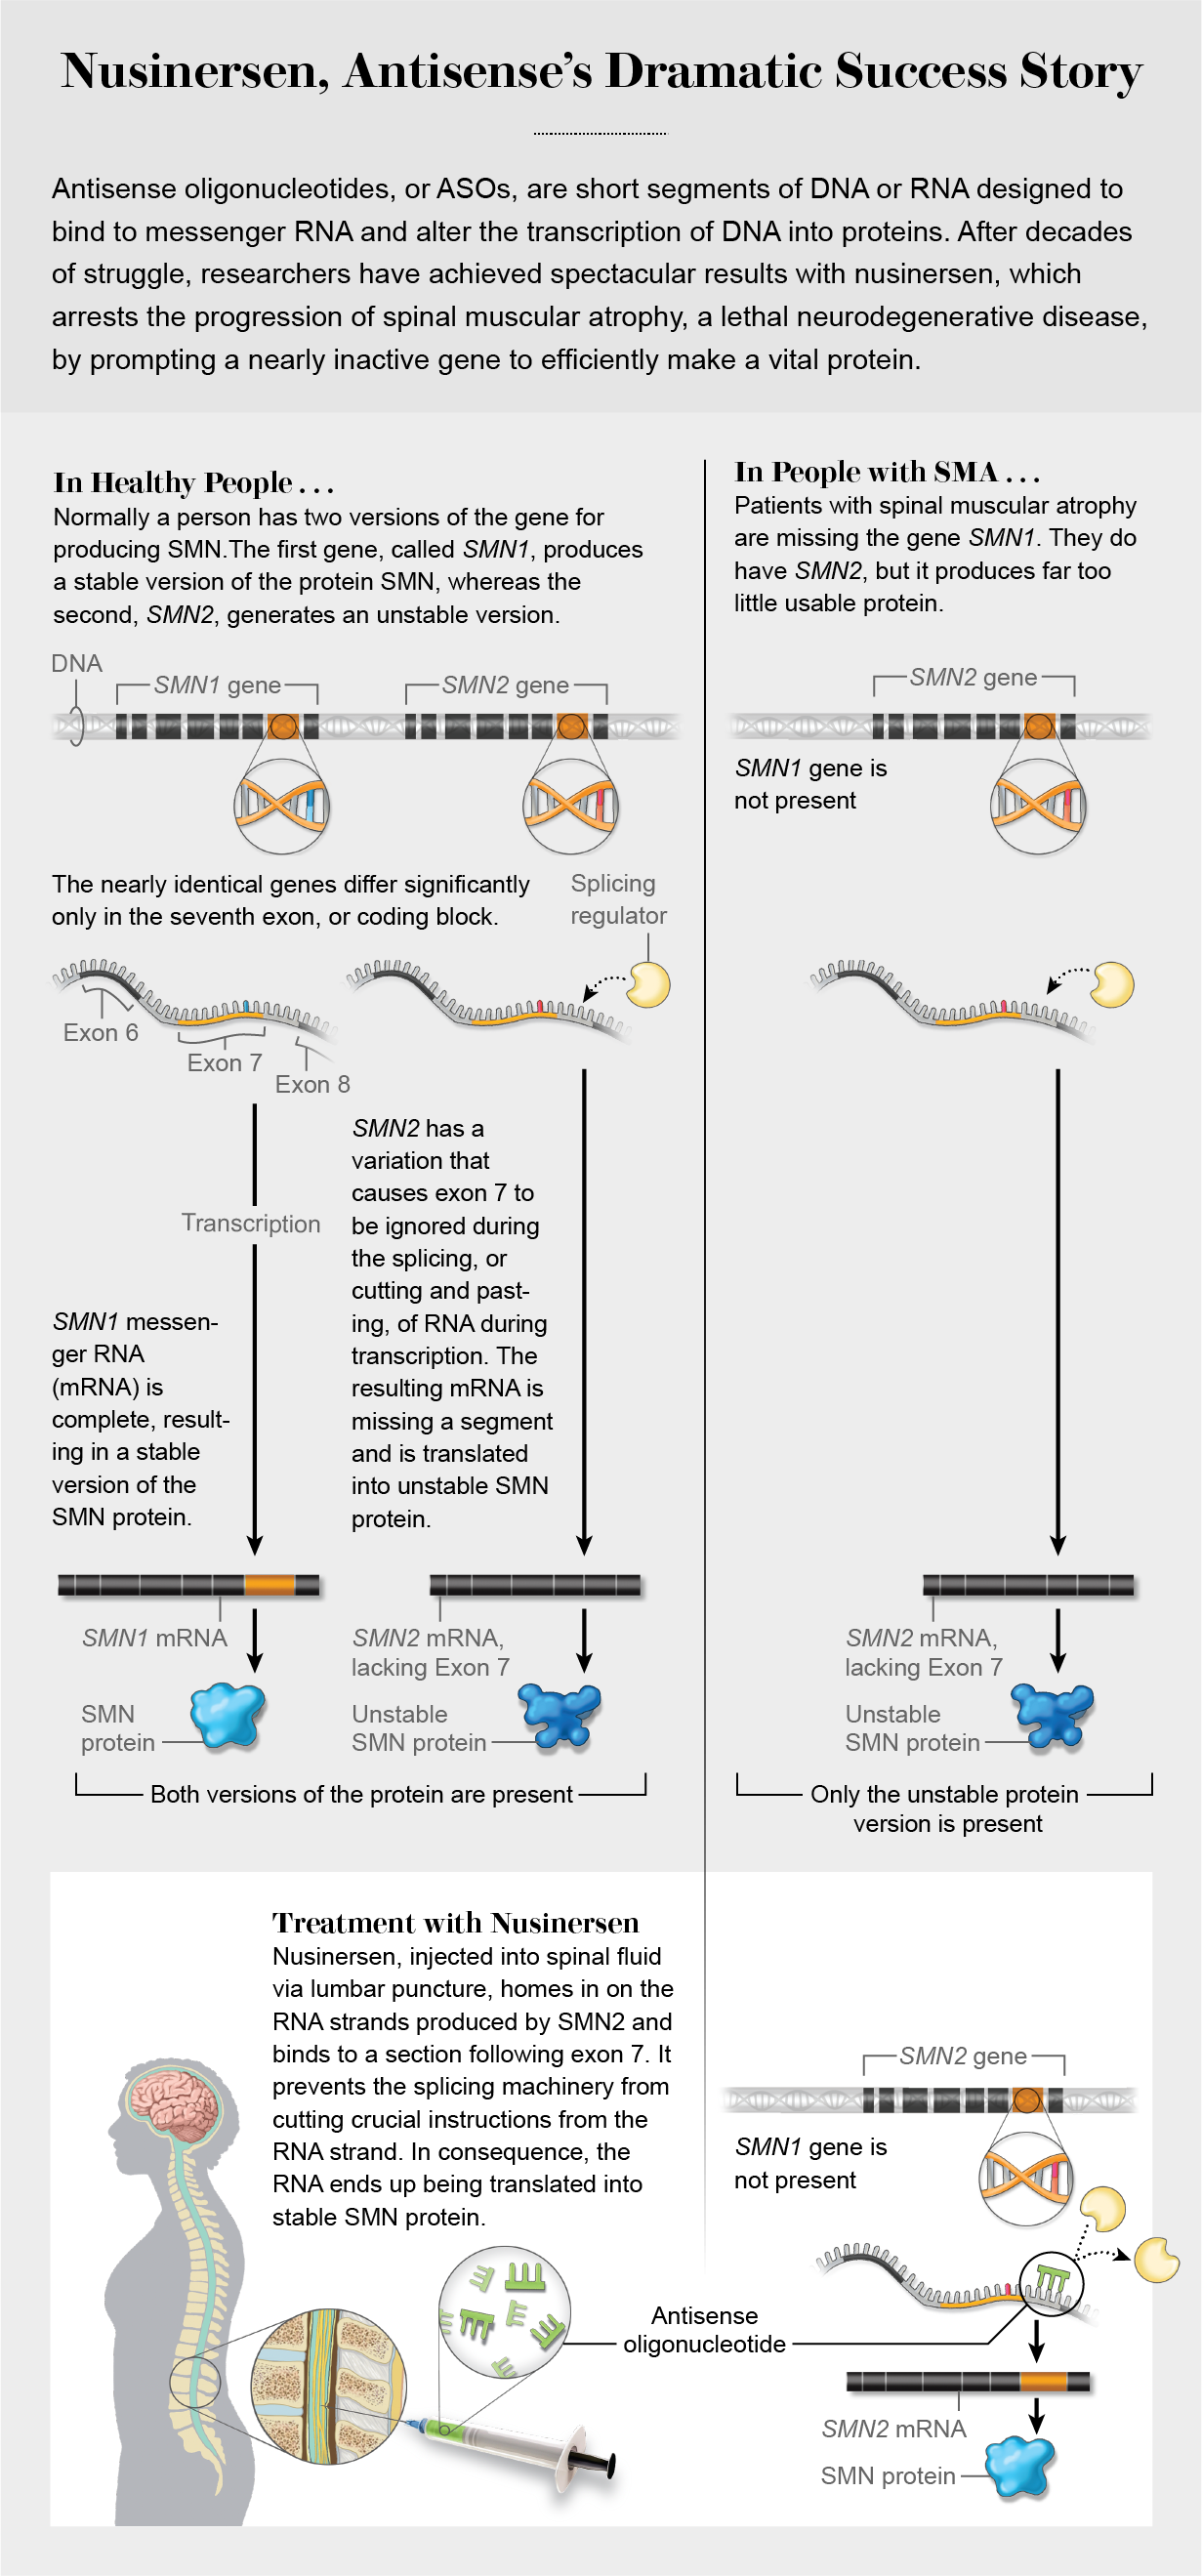 Graphic shows why SMN protein production goes awry in people with spinal muscular atrophy and how nusinerson (an antisense oligonucleotide therapy) results in stable SMN